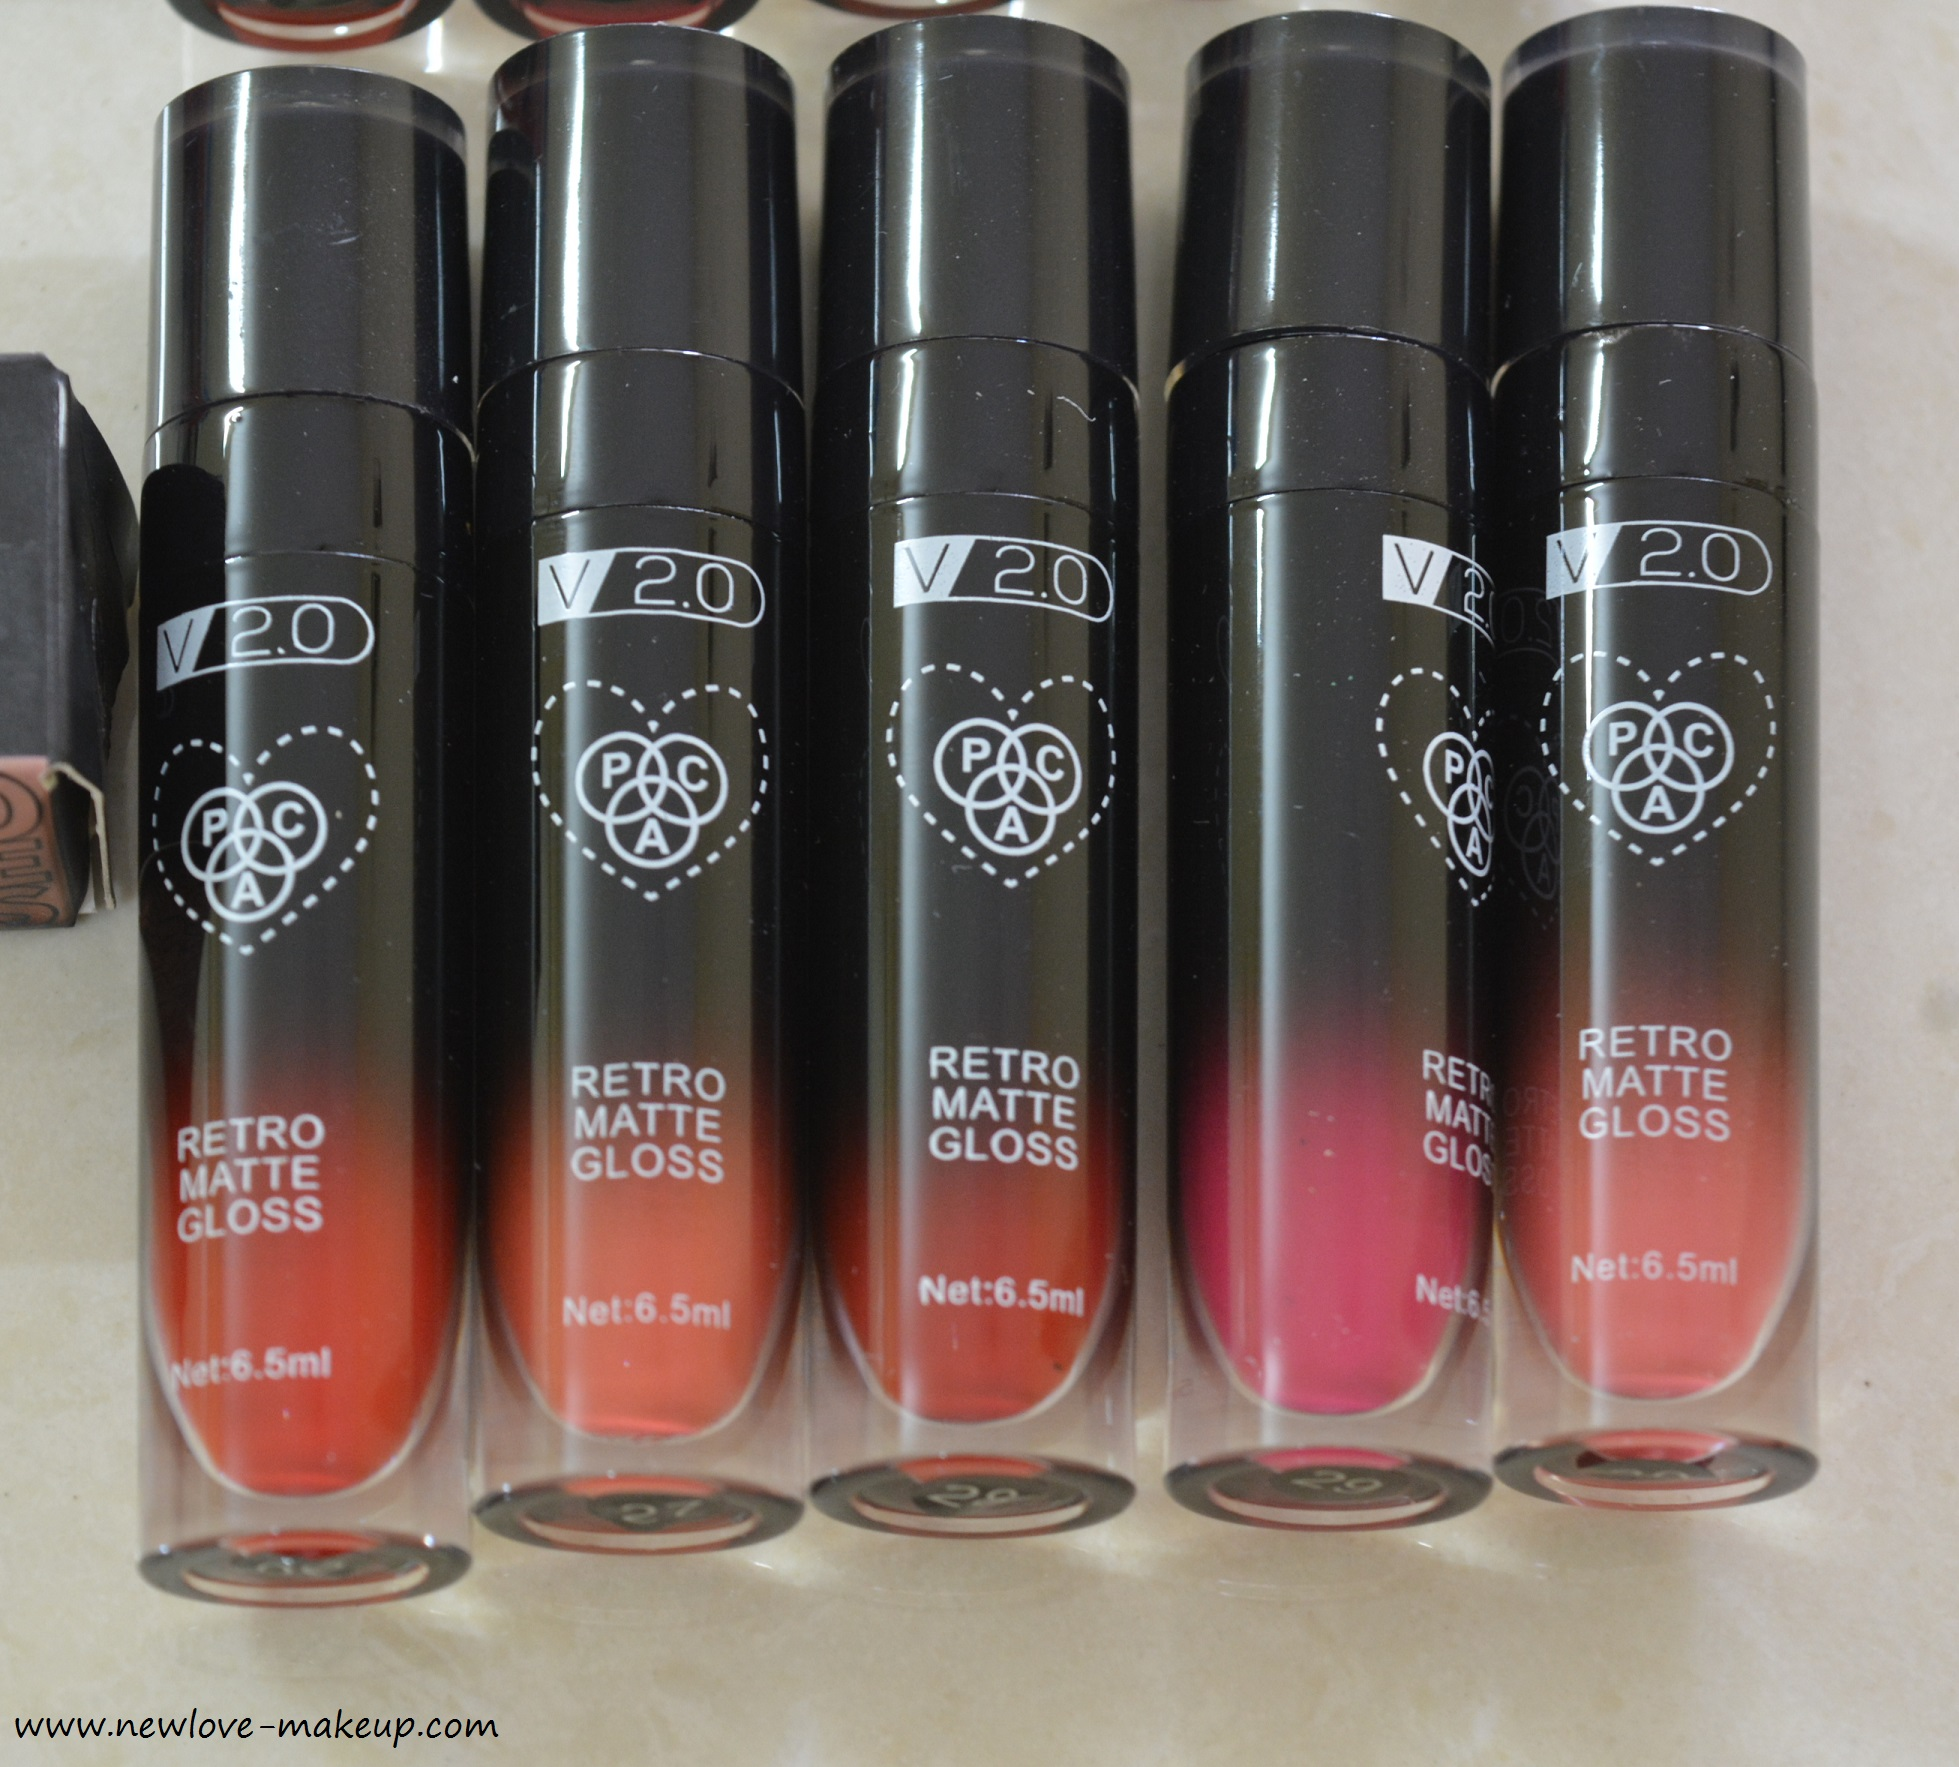 PAC Retro Matte Gloss V2.0 Shades 21 to 40 Review, Swatches